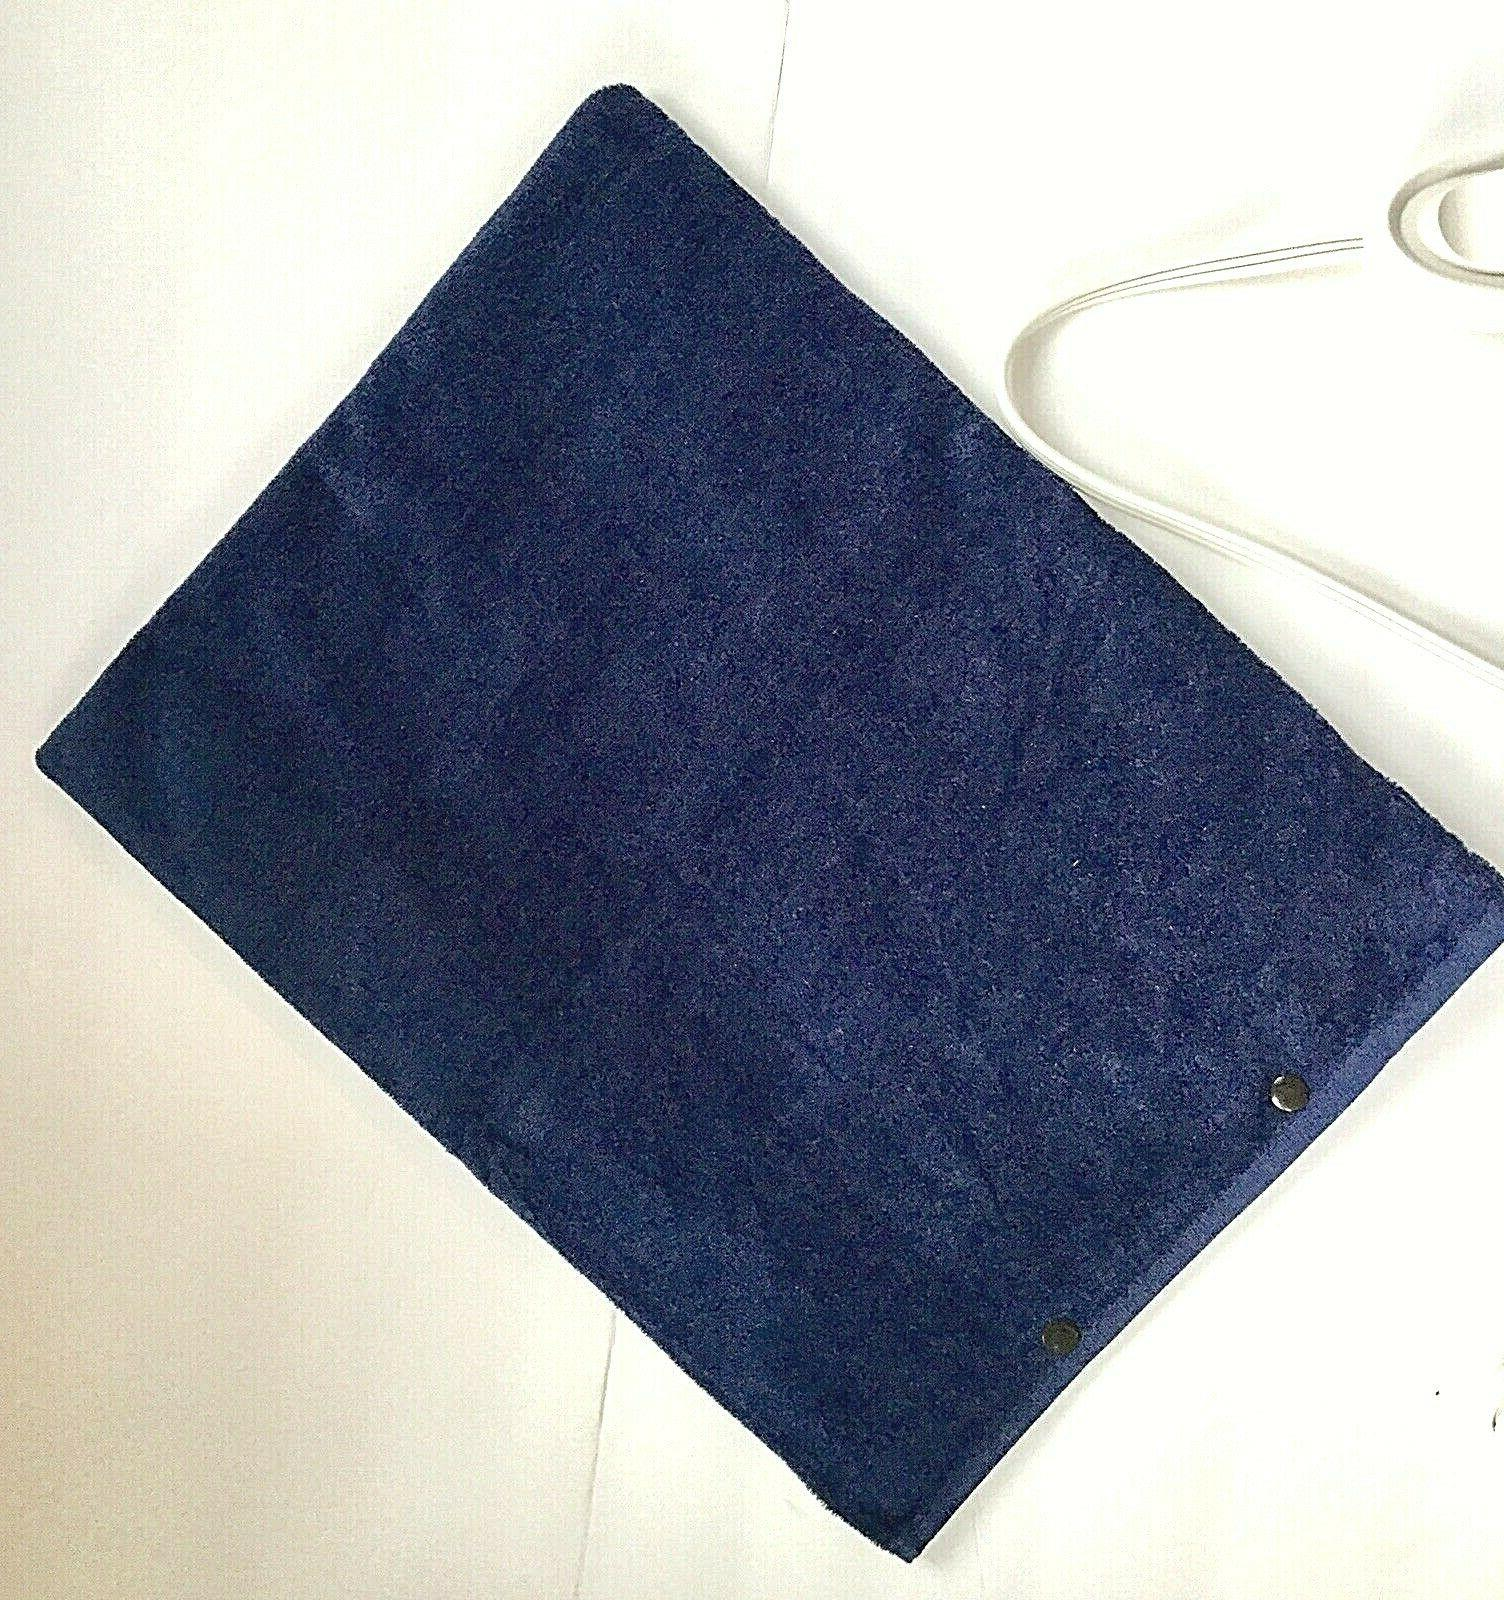 """COVER for Electric Heating Pad, Fits 12"""" x 15"""" Heating Pad,"""